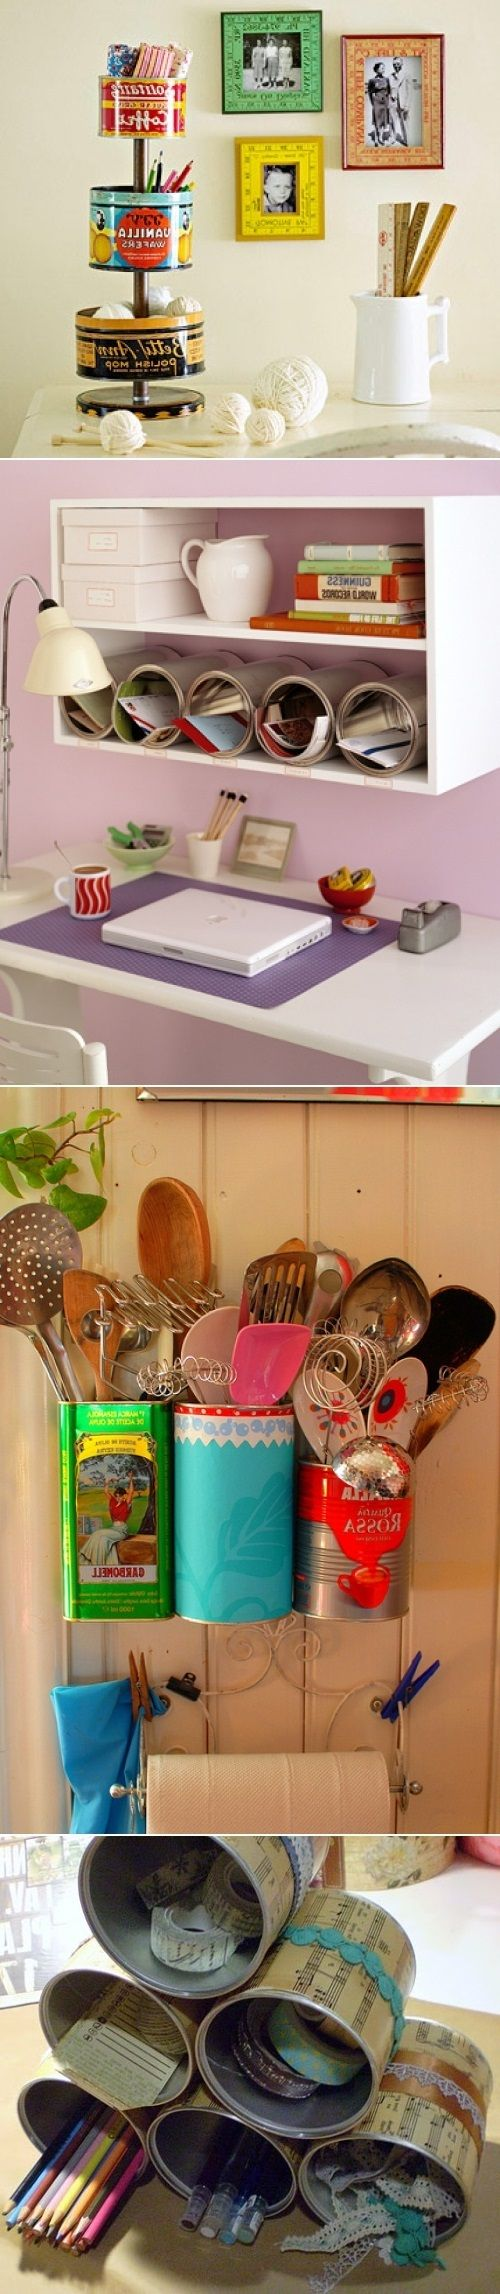 322 best images about reduce reuse recycle on pinterest for Reduce reuse recycle crafts